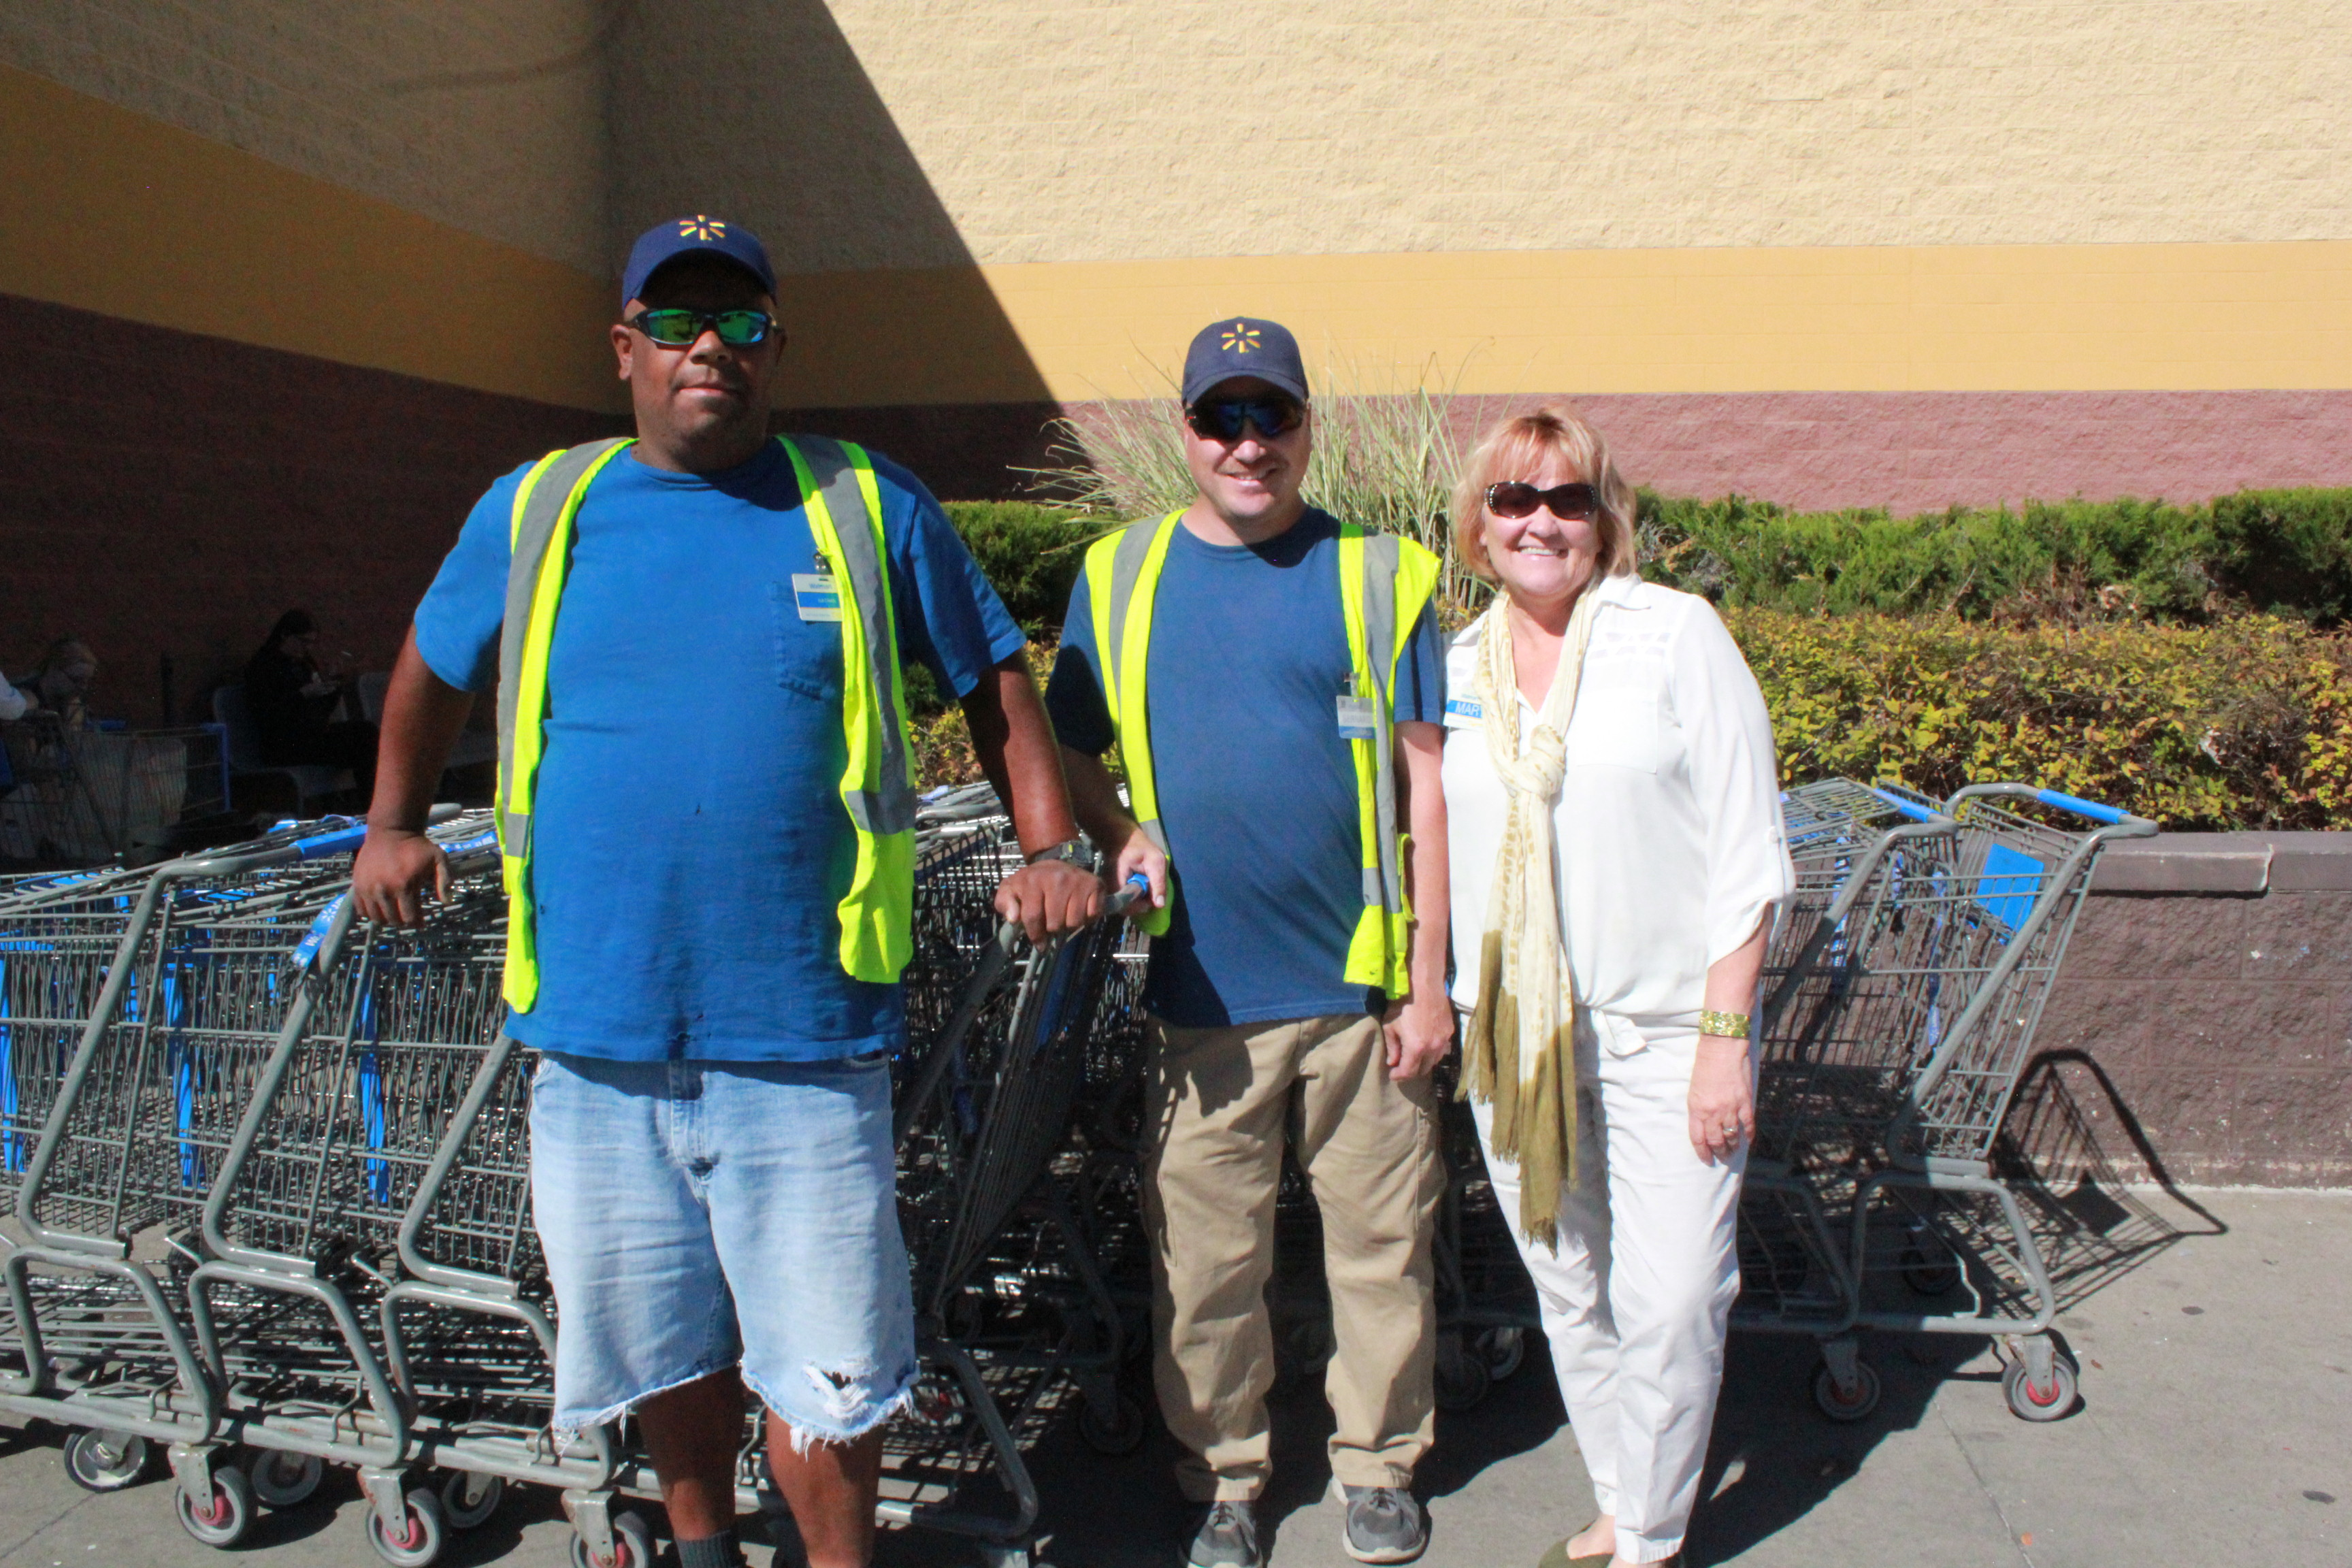 Walmart stands out as employer of people with disabilities